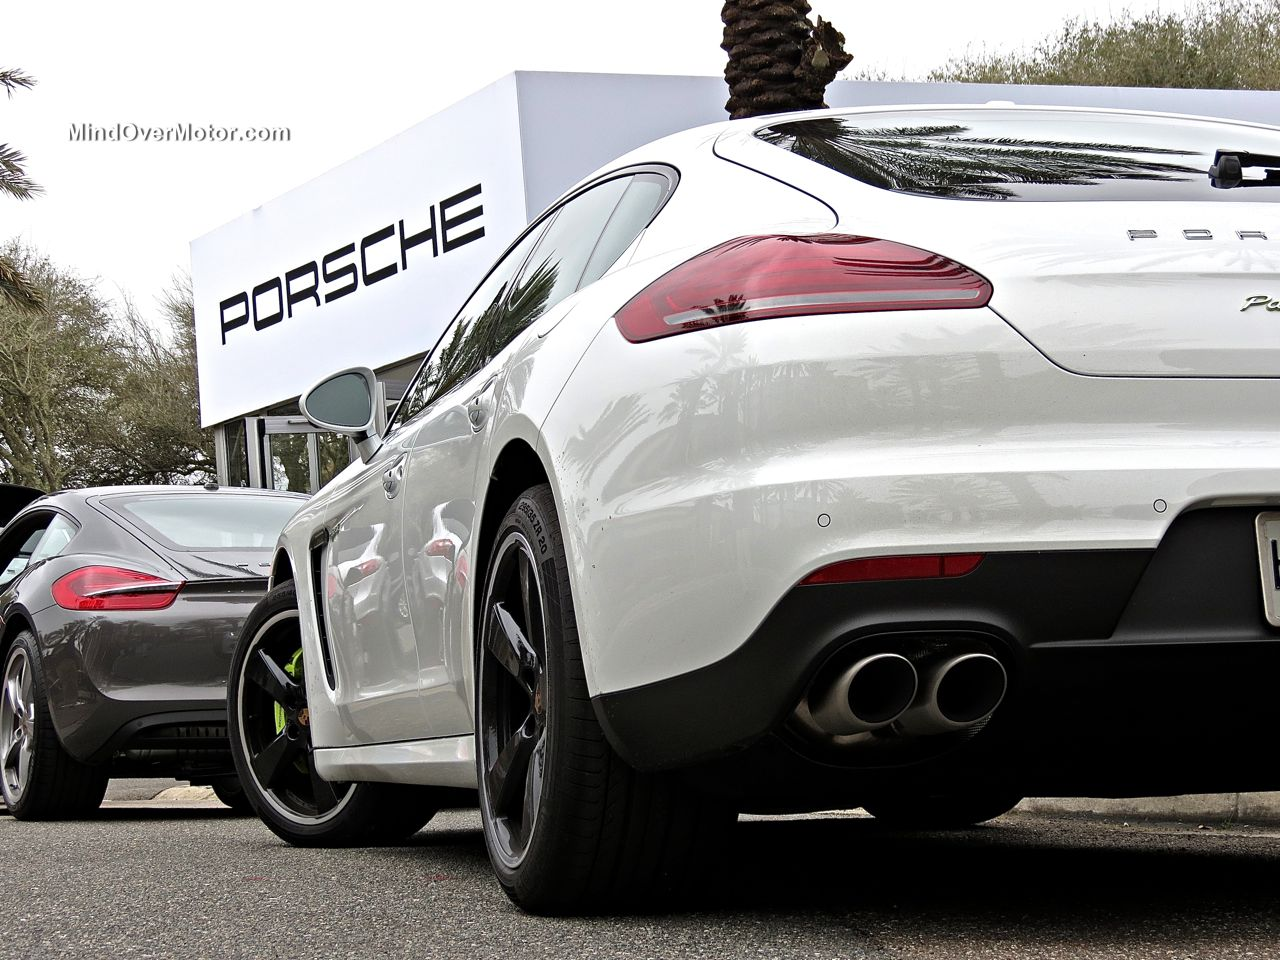 White Porsche Panamera S E-Hybrid LED Tail Lights